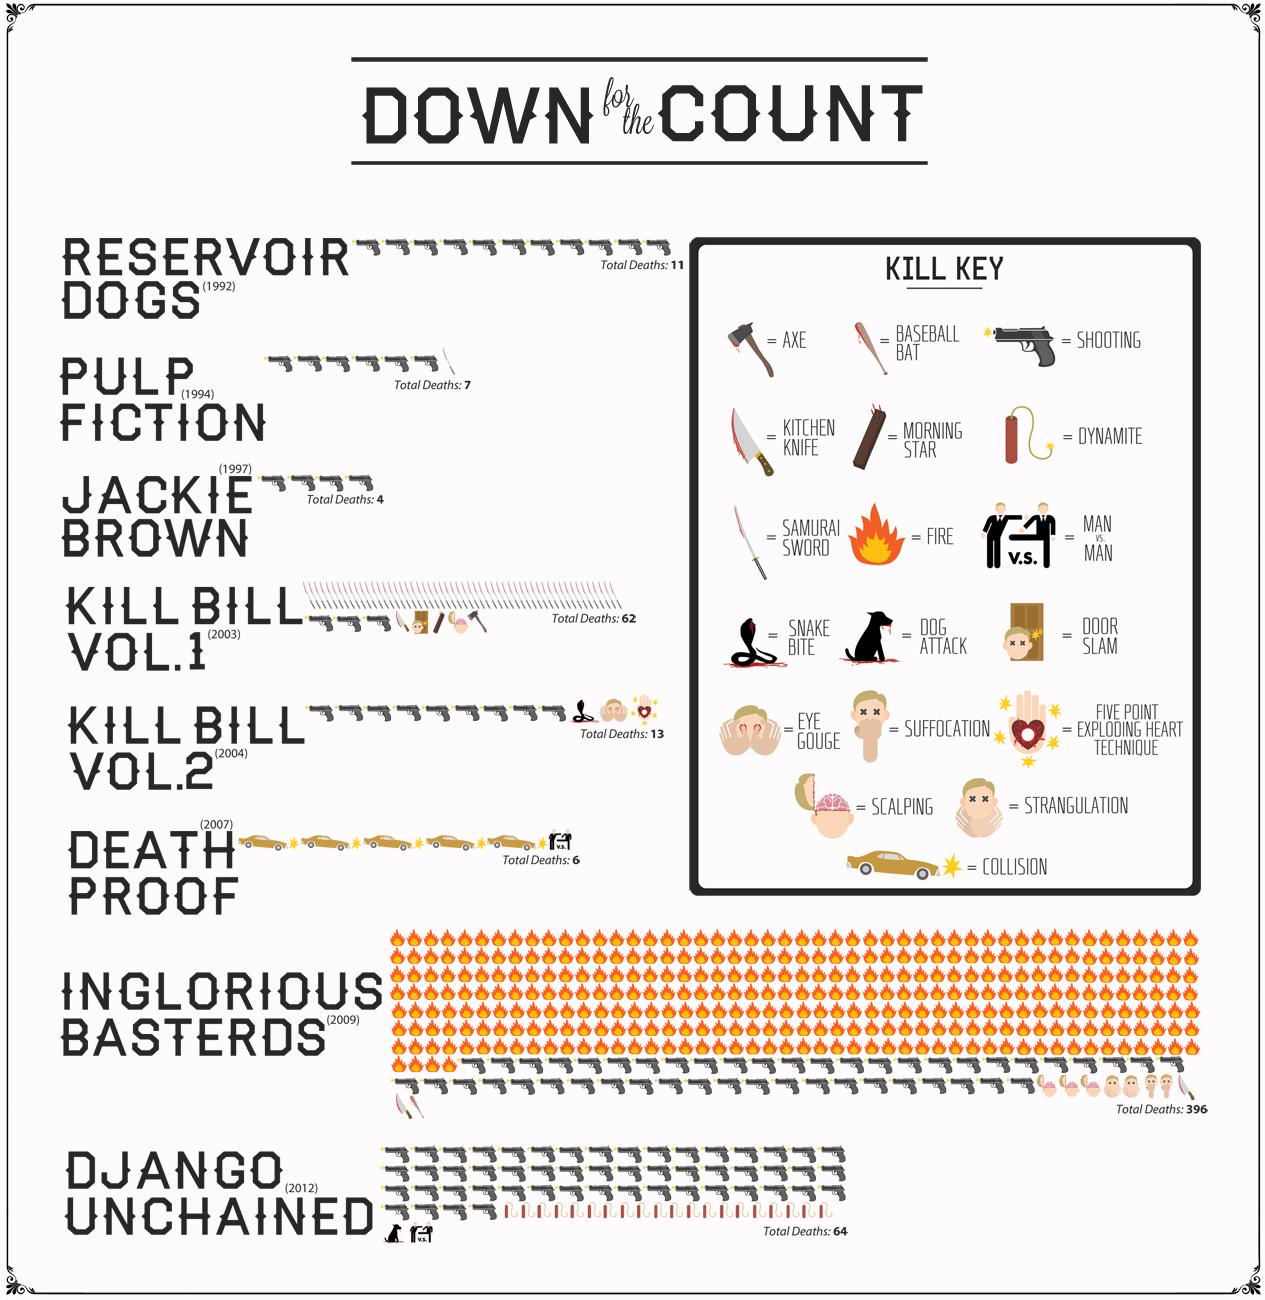 Tarantino Blood Toll-Infographic